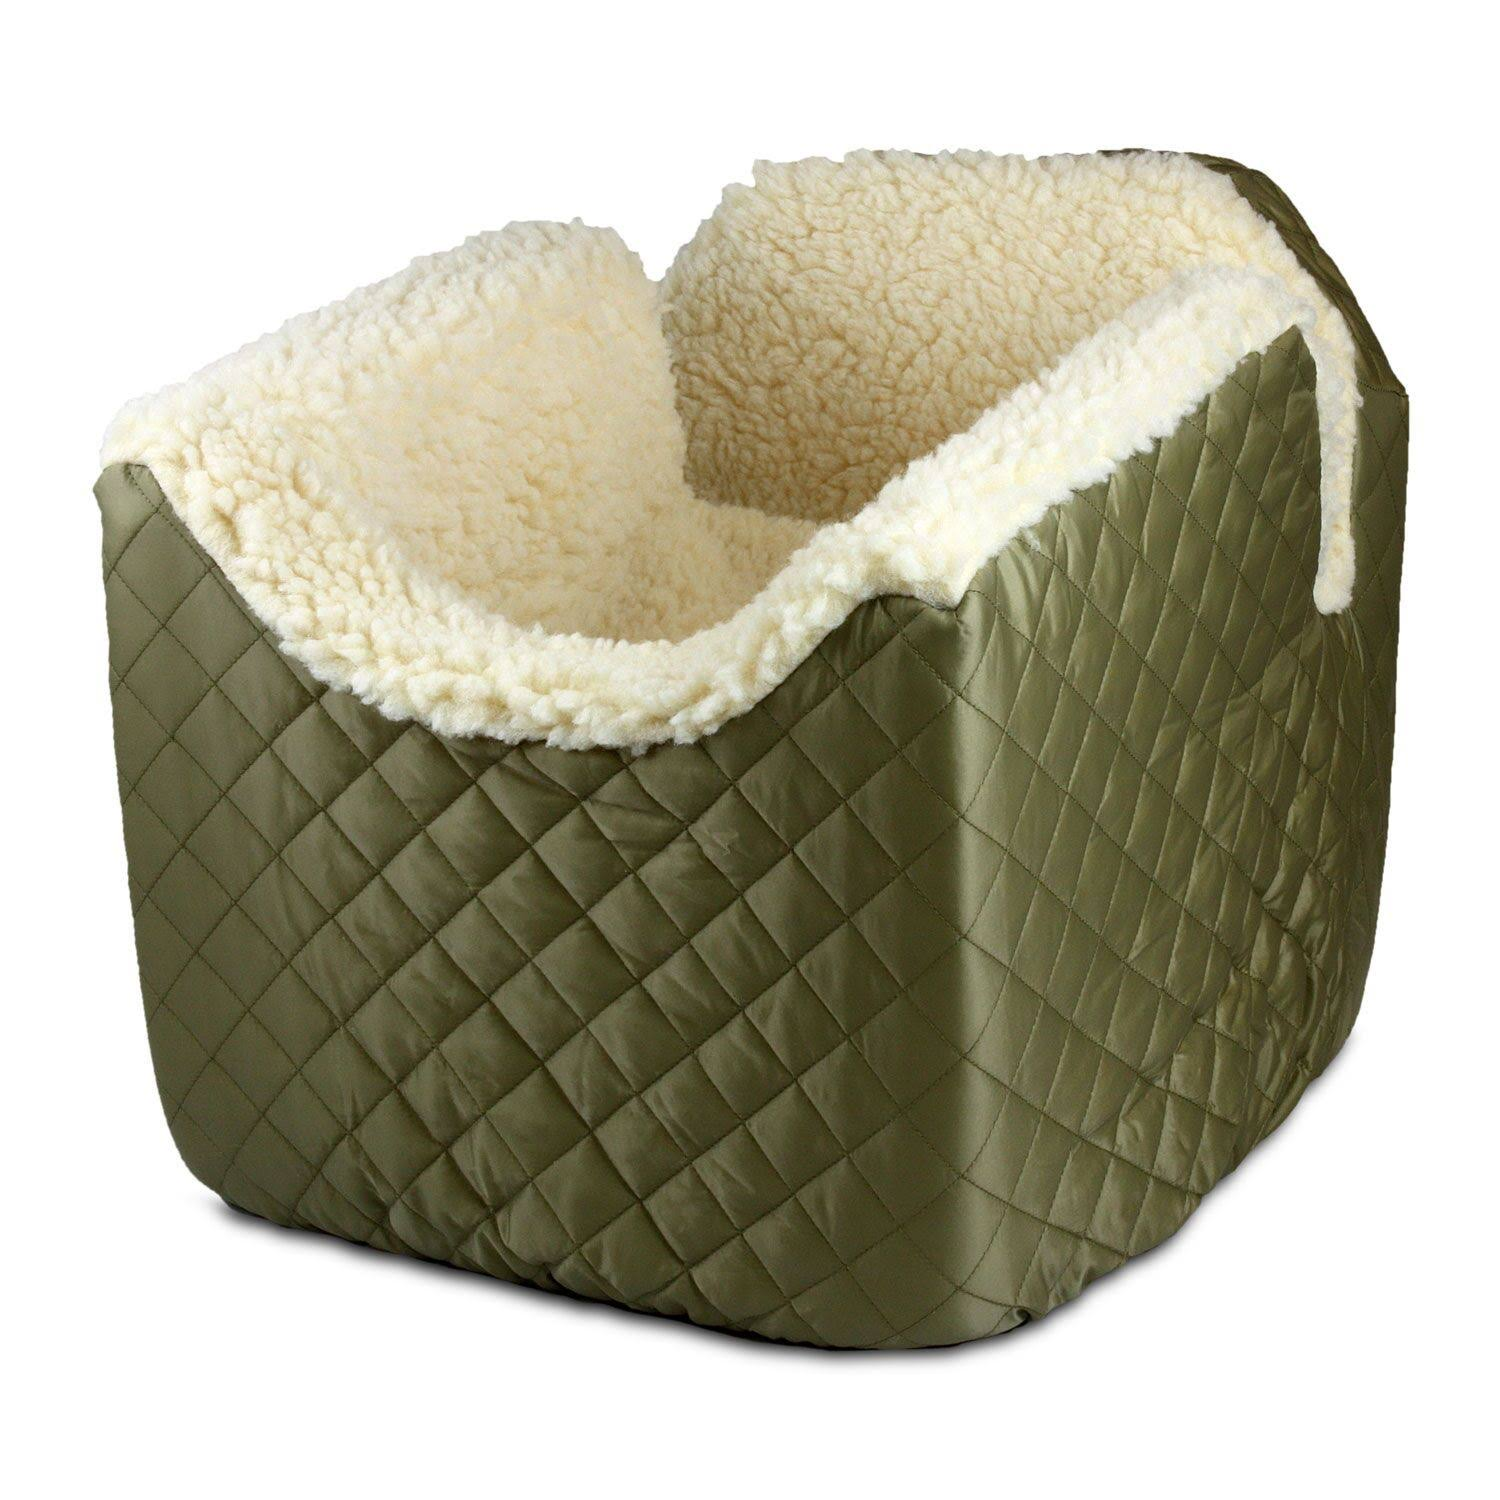 Snoozer Lookout I Pet Car Seat - Khaki, Small